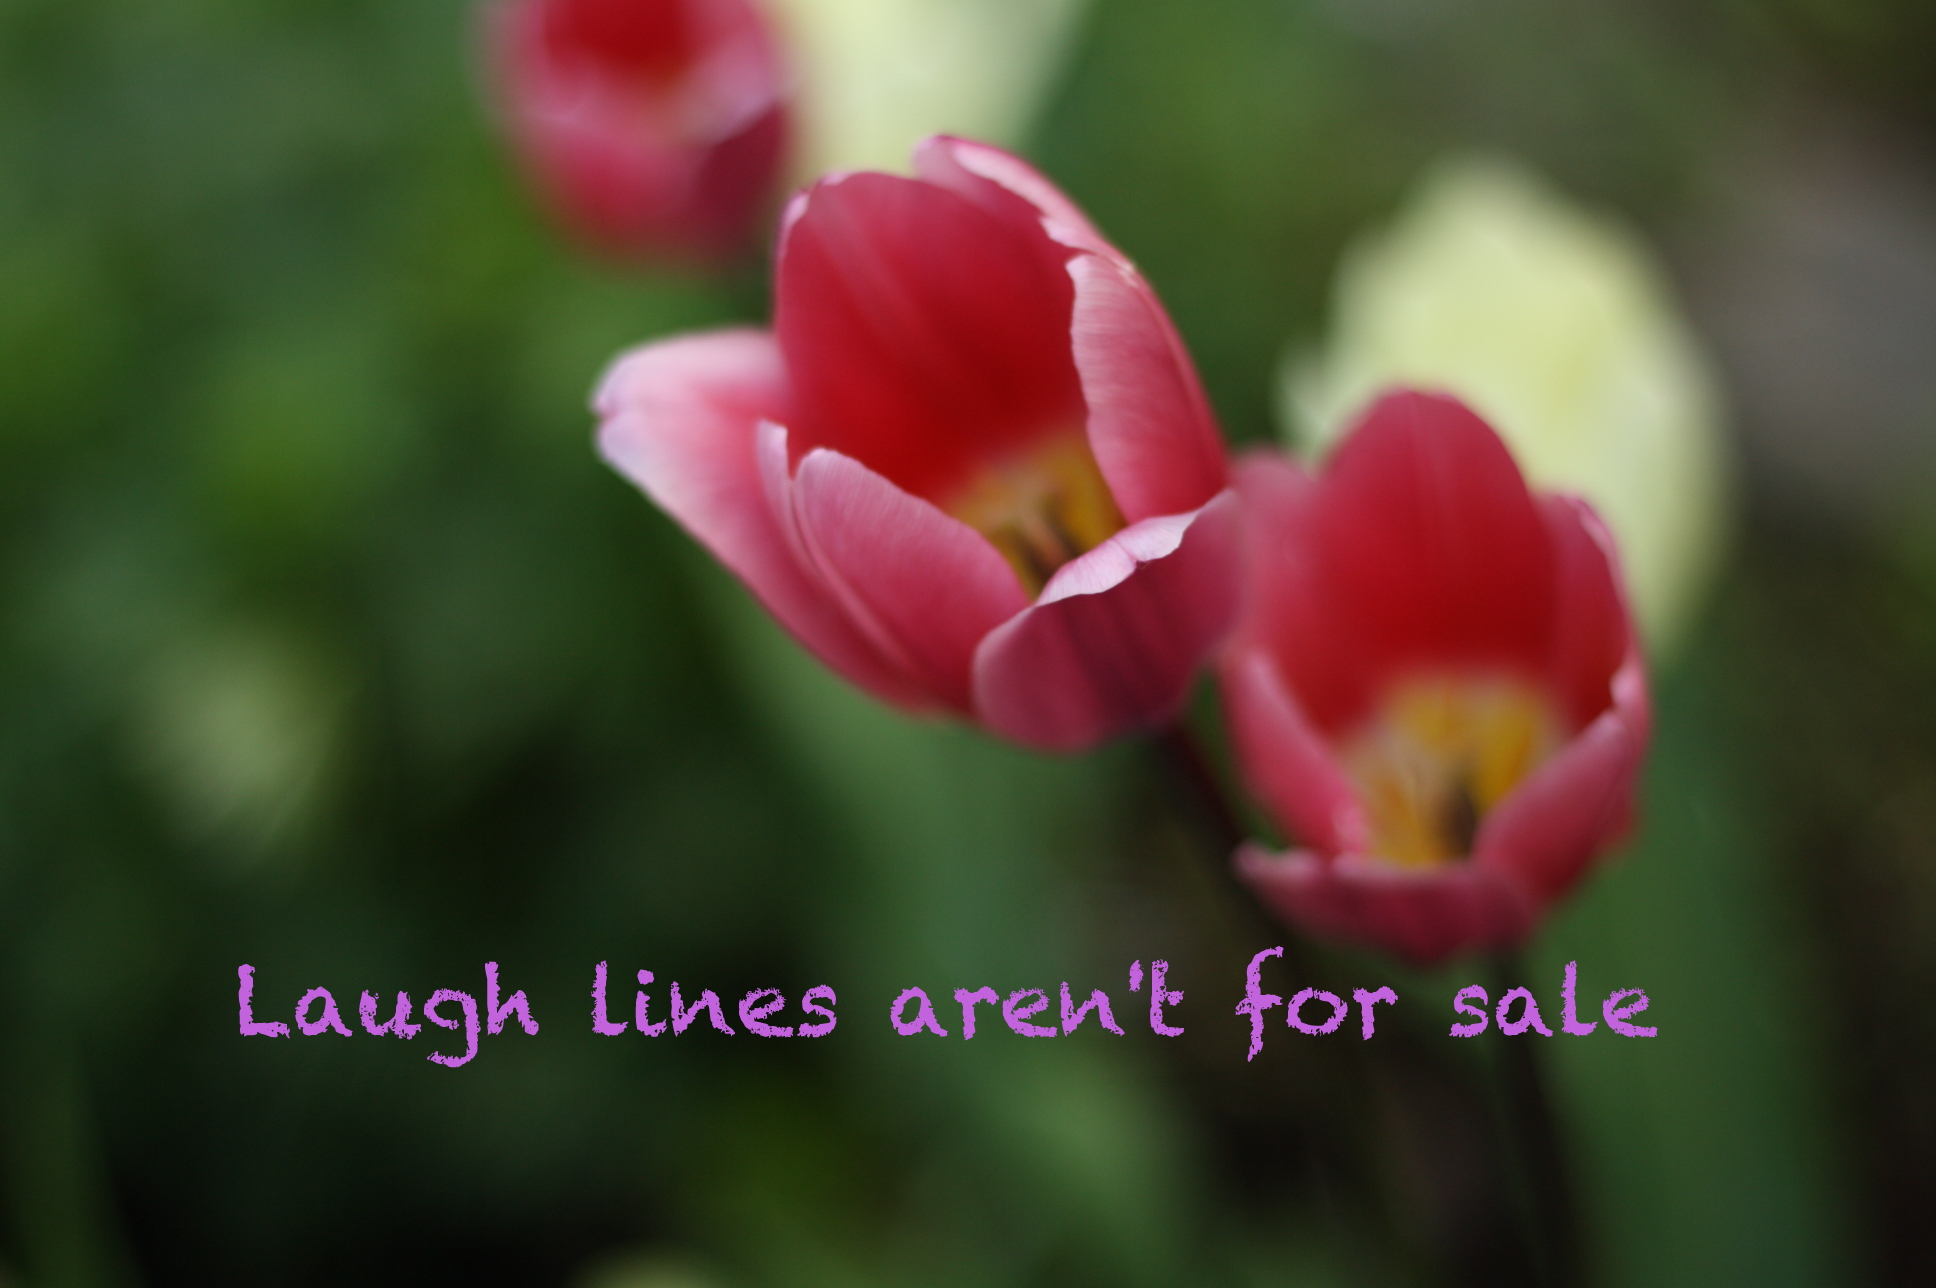 Laugh lines are not for sale